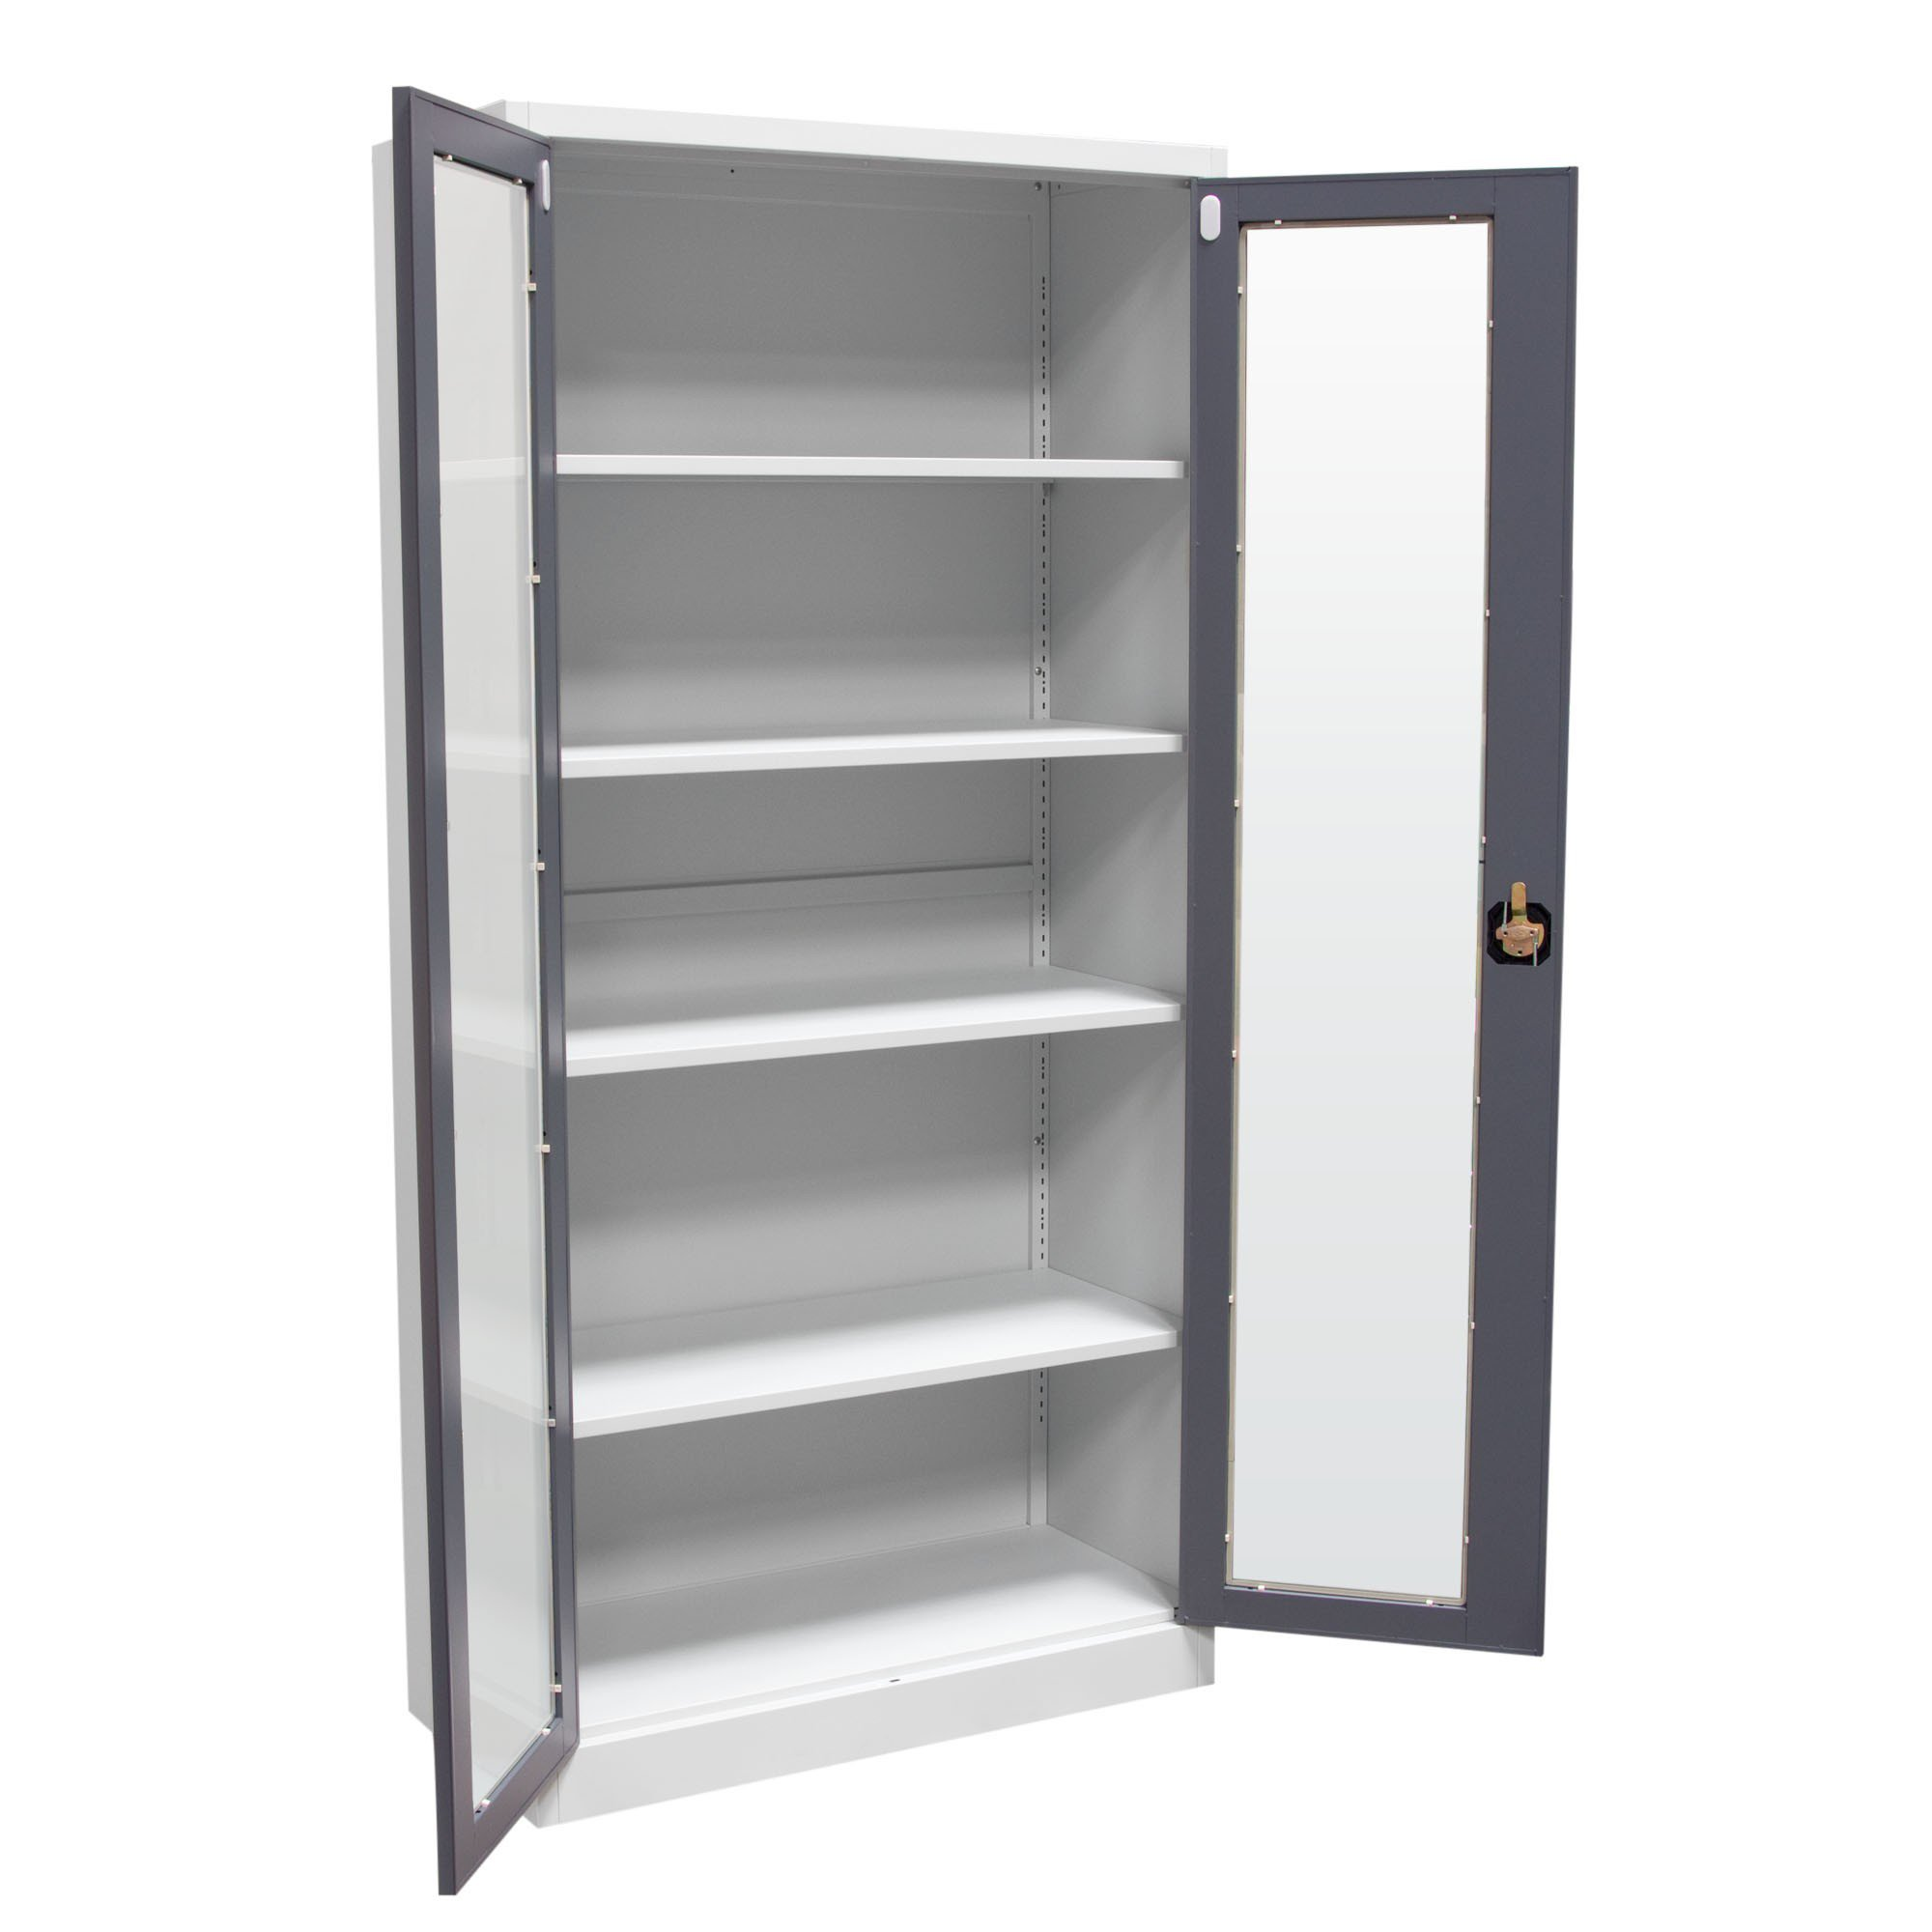 Chic ... 2-Door 5-Shelf Bookcase with Tempered Glass Door Front u0026 Key Lock Entry 2 shelf bookcase with glass doors